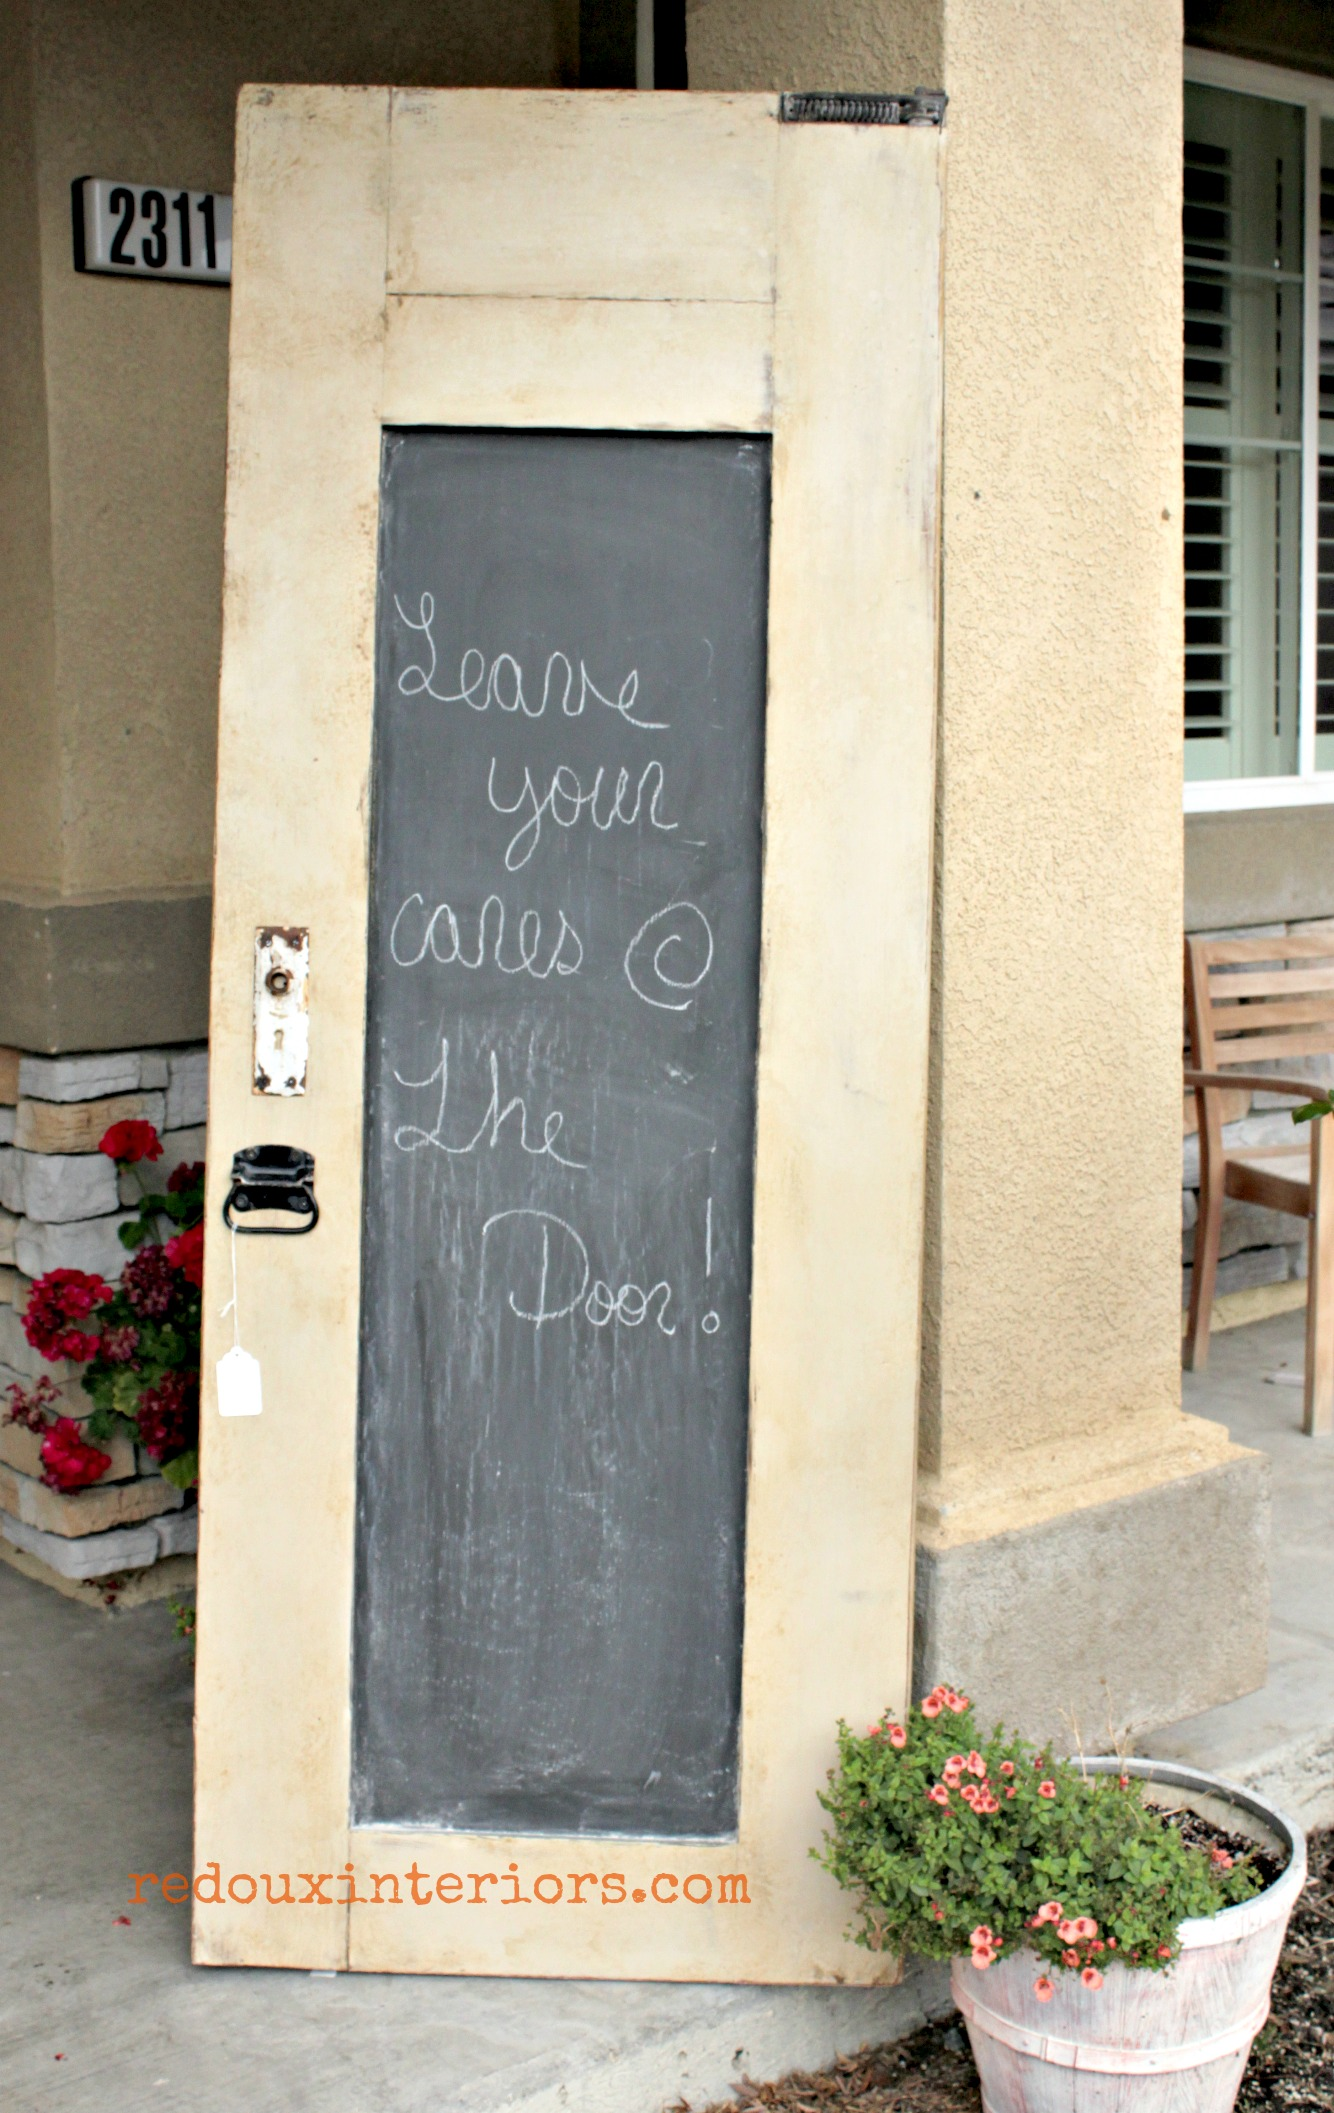 Chalkboard door with weathered glaze redouxinteriors & New Idea for an old Door How to make a weathered glaze finish